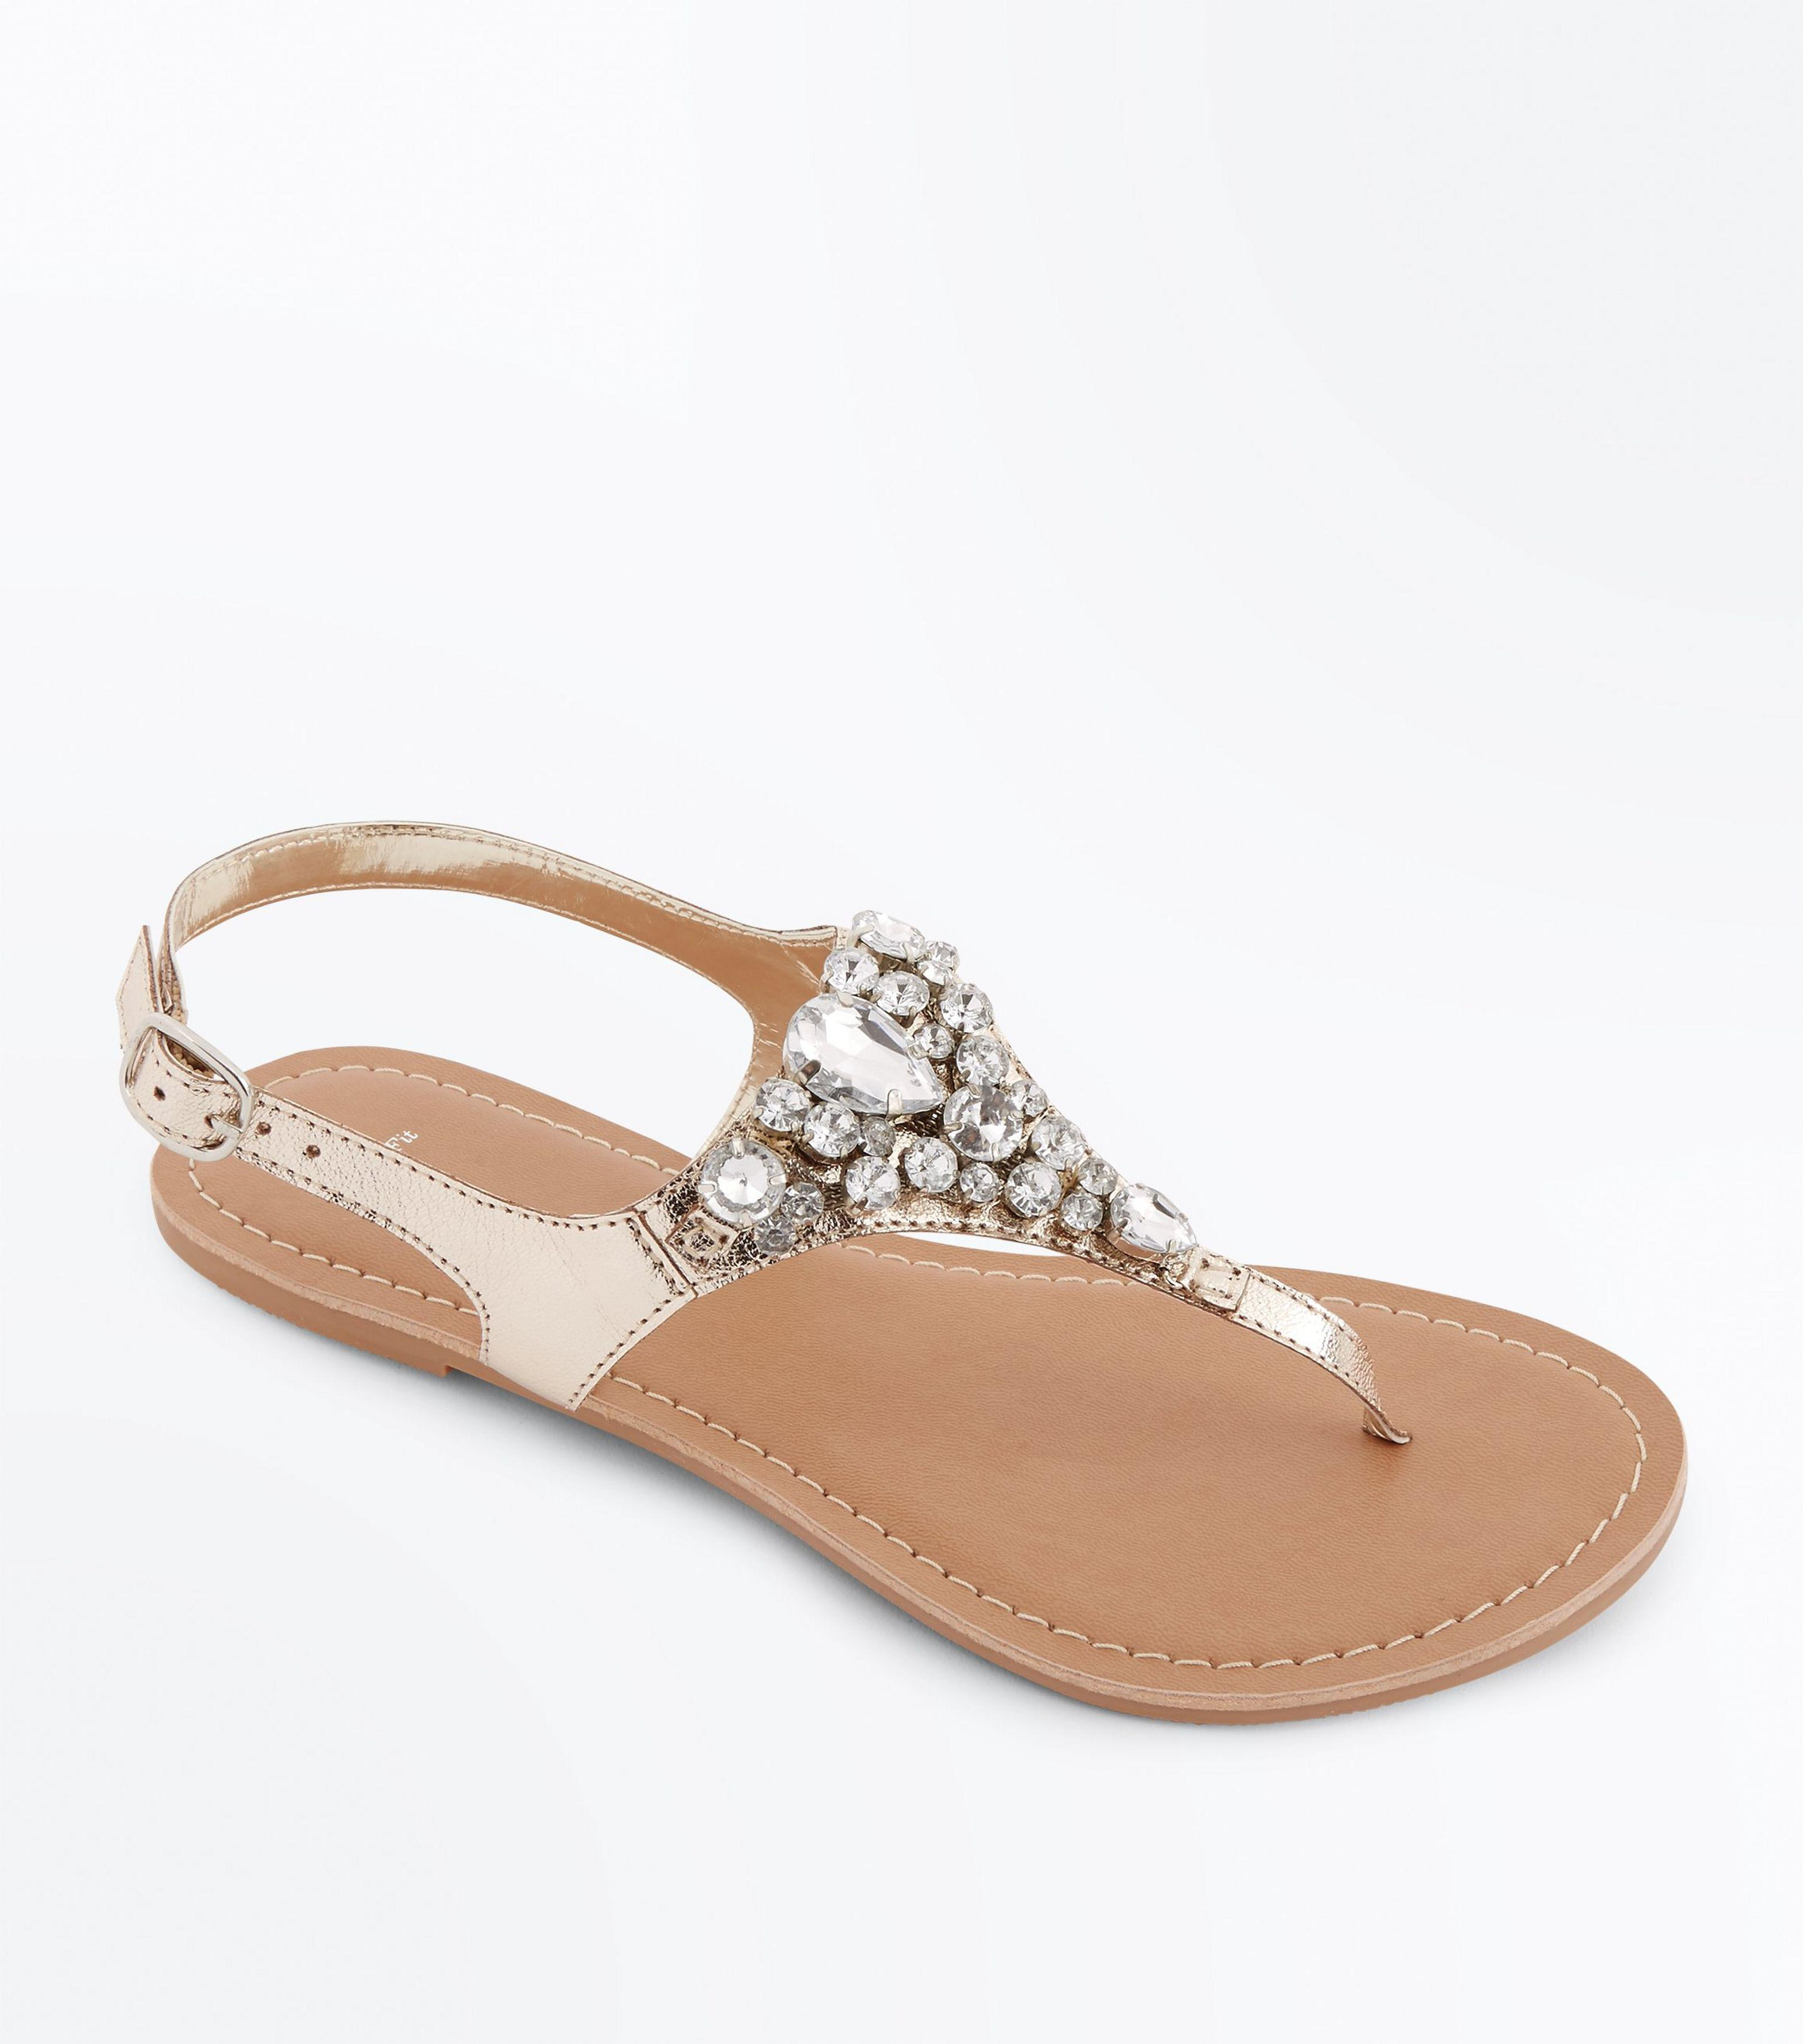 918451a36 New Look Wide Fit Gold Leather Gem Strap Flat Sandals in Metallic - Lyst